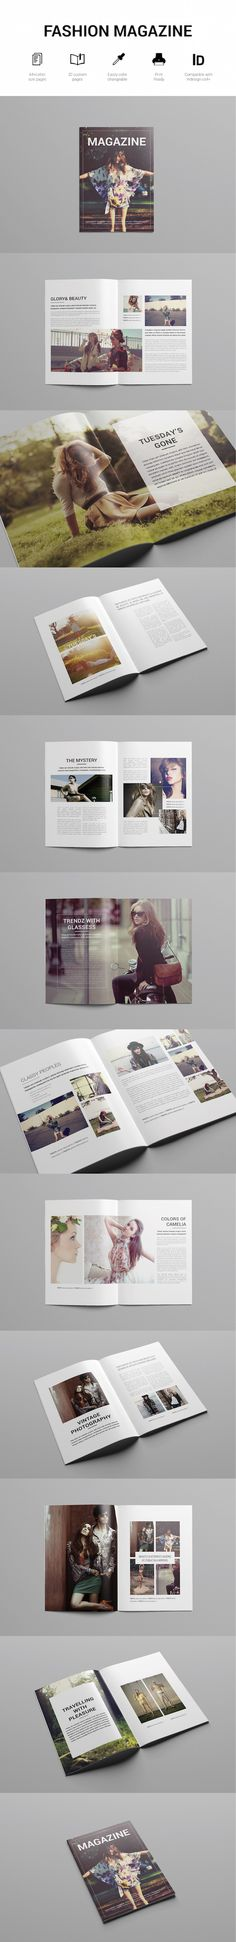 This is an editable magazine template available for download at: http://graphicriver.net/item/minimal-fashion-magazine-template/10028651